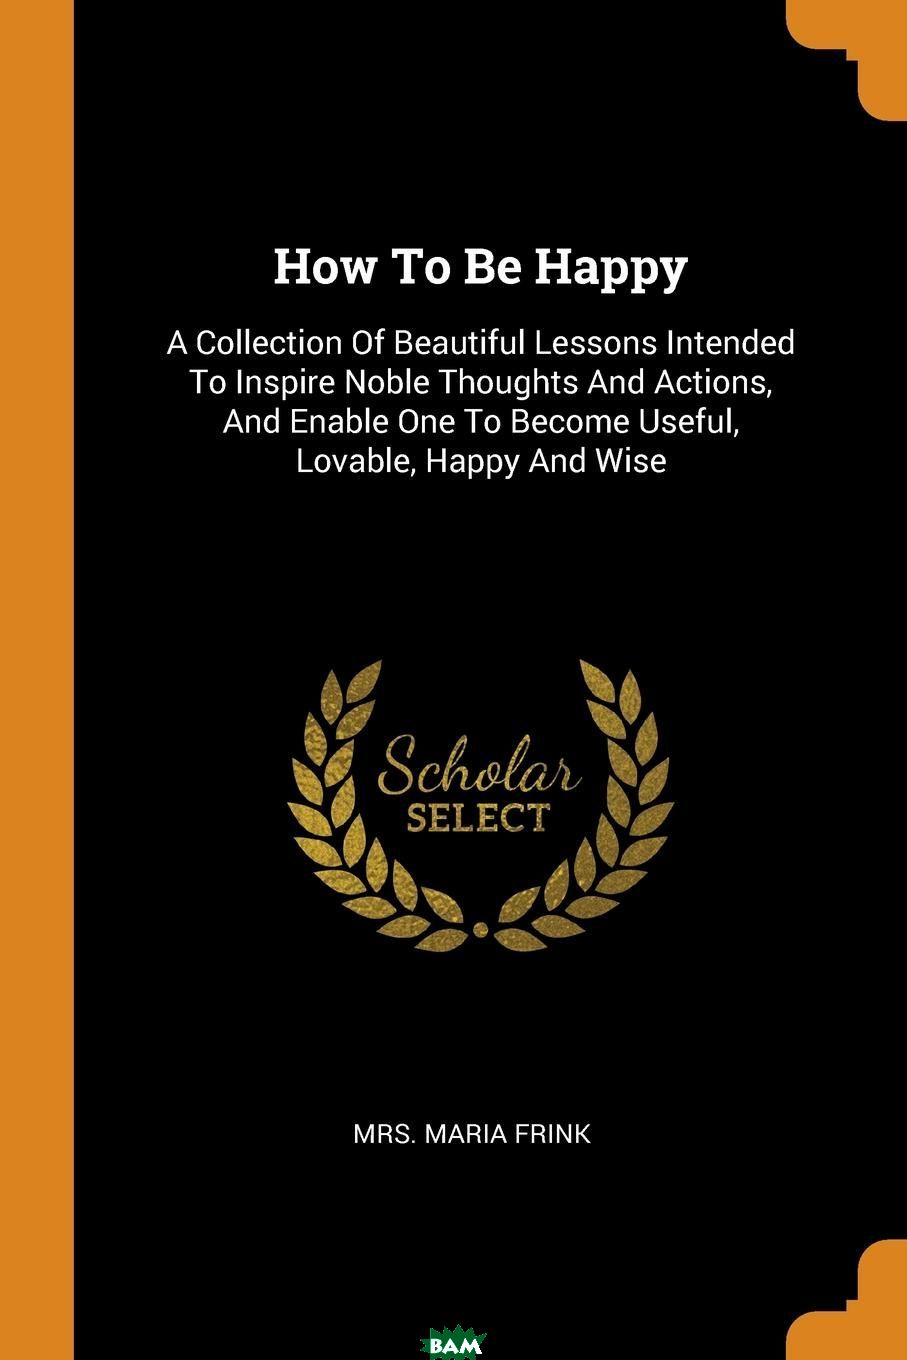 Купить How To Be Happy. A Collection Of Beautiful Lessons Intended To Inspire Noble Thoughts And Actions, And Enable One To Become Useful, Lovable, Happy And Wise, Mrs. Maria Frink, 9780353593909